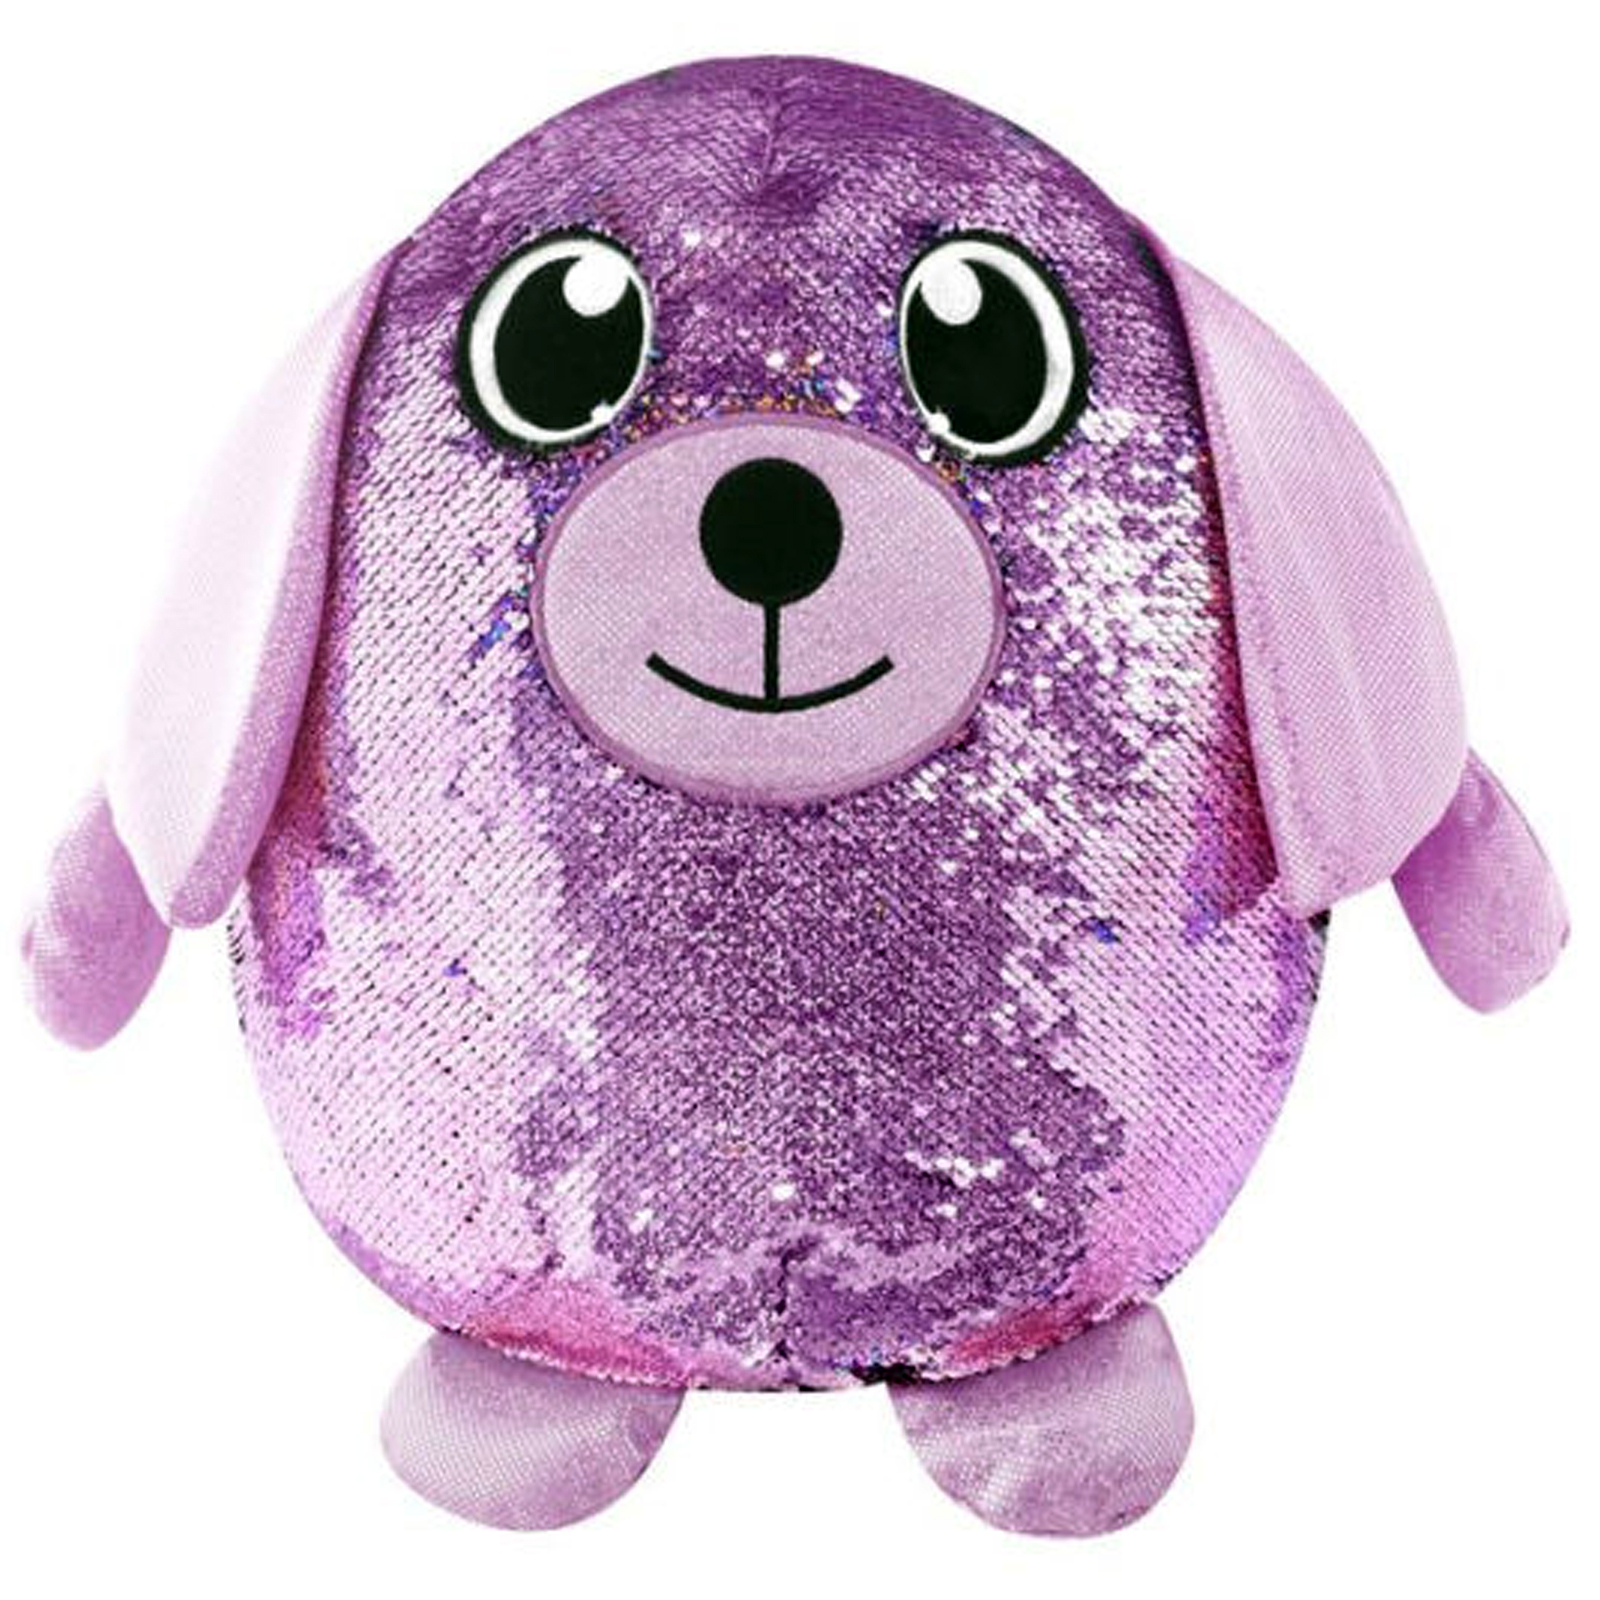 "Shimmeez 8"" Delilah Dog Reversible Sequin Plush Stuffed Animal"